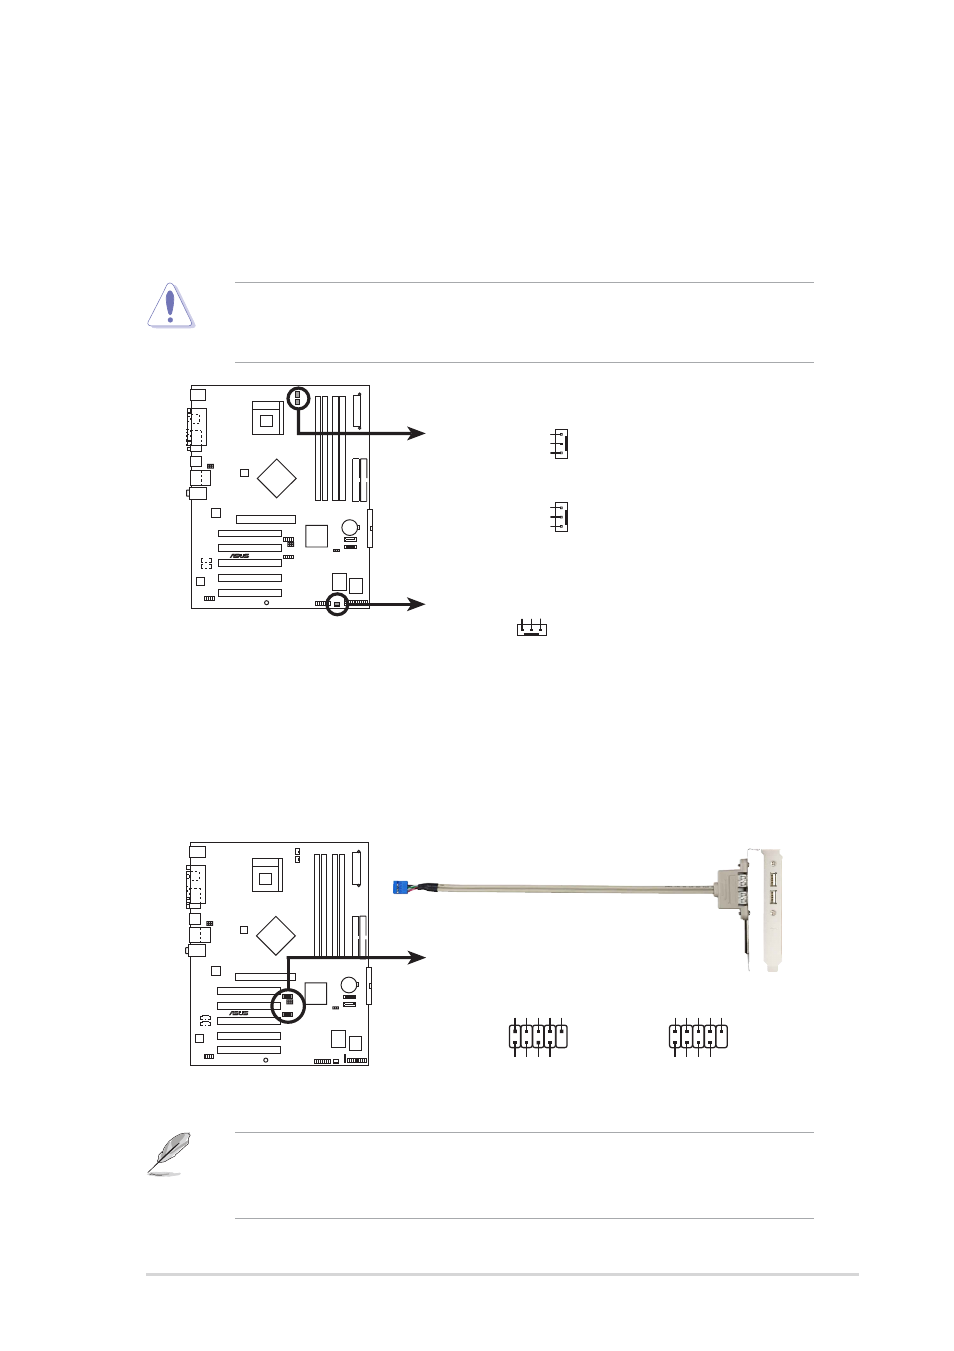 Asus P4S800D-X User Manual | Page 25 / 64 on usb circuit schematic diagram, usb 3.0 wiring-diagram, usb pinout diagram, usb header pinout, usb 3.0 pin diagram, usb cable wiring, usb connector schematic, usb motherboard diagram, usb wire diagram,